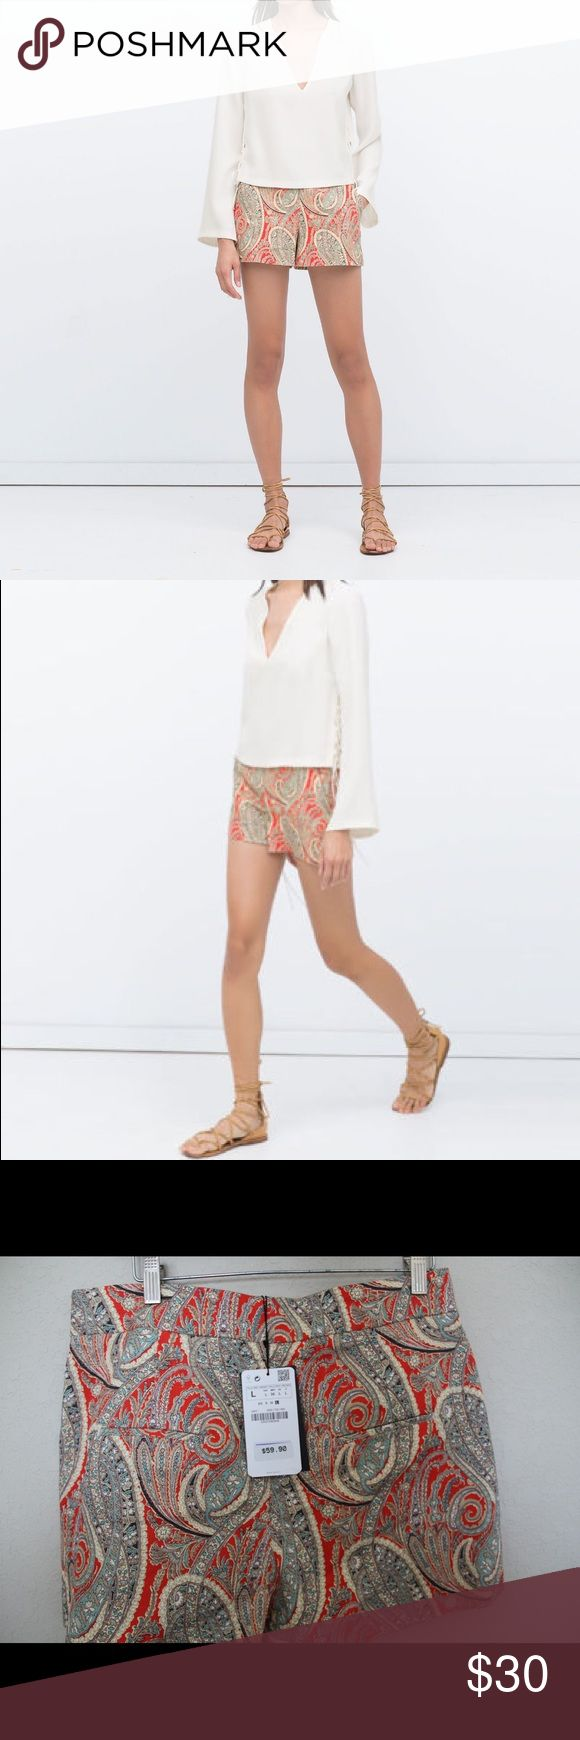 Zara red orange paisley shorts size M AMAZING ZARA MULTICOLOR PAISLEY PRINT SHORTS - Red and Orange tones  Be your own stylist with this fabulous piece.  A long tee, a dressy blouse, a chambray tied shirt all work with this versatile top.  Pack it on vacation and you have many looks.  Dress it up with heels or a wedge and dress it down with flip-flops, sneakers, or a gladiator sandal.  EVERYTHING WORKS! You will love wearing it and the compliments will be plentiful.....  SIZE M  98% COTTON…